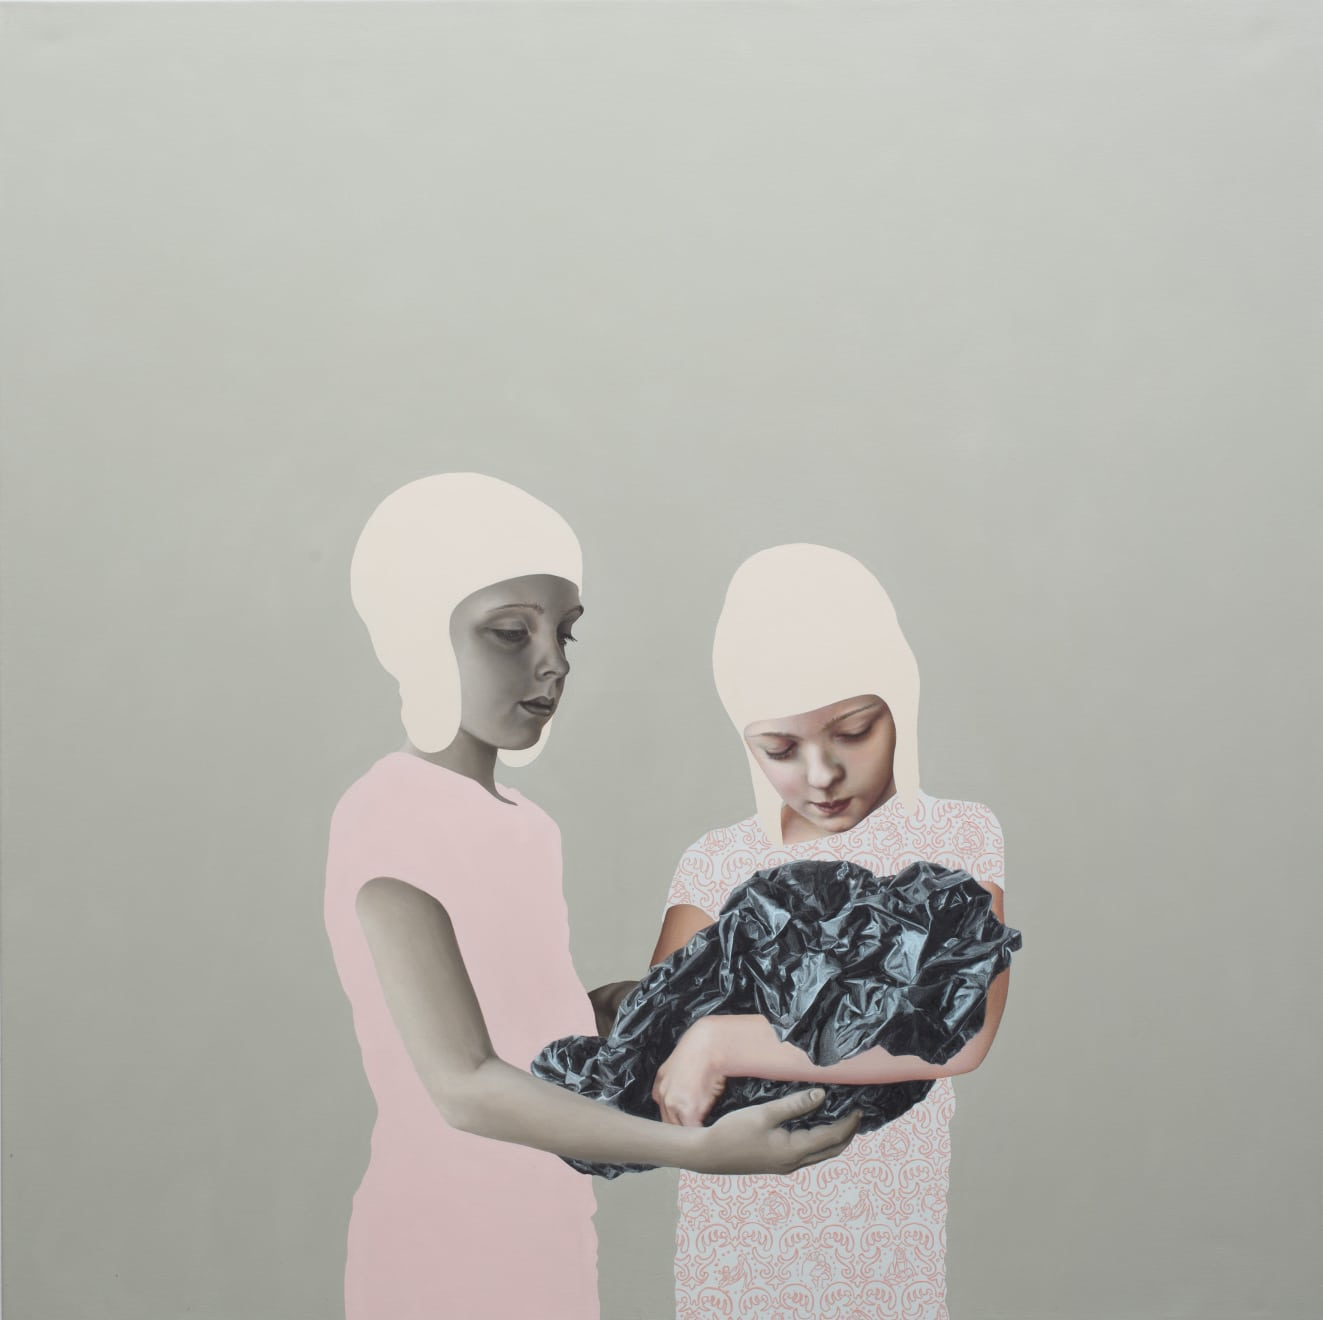 Pippa Young, Self-abnegation, 2016